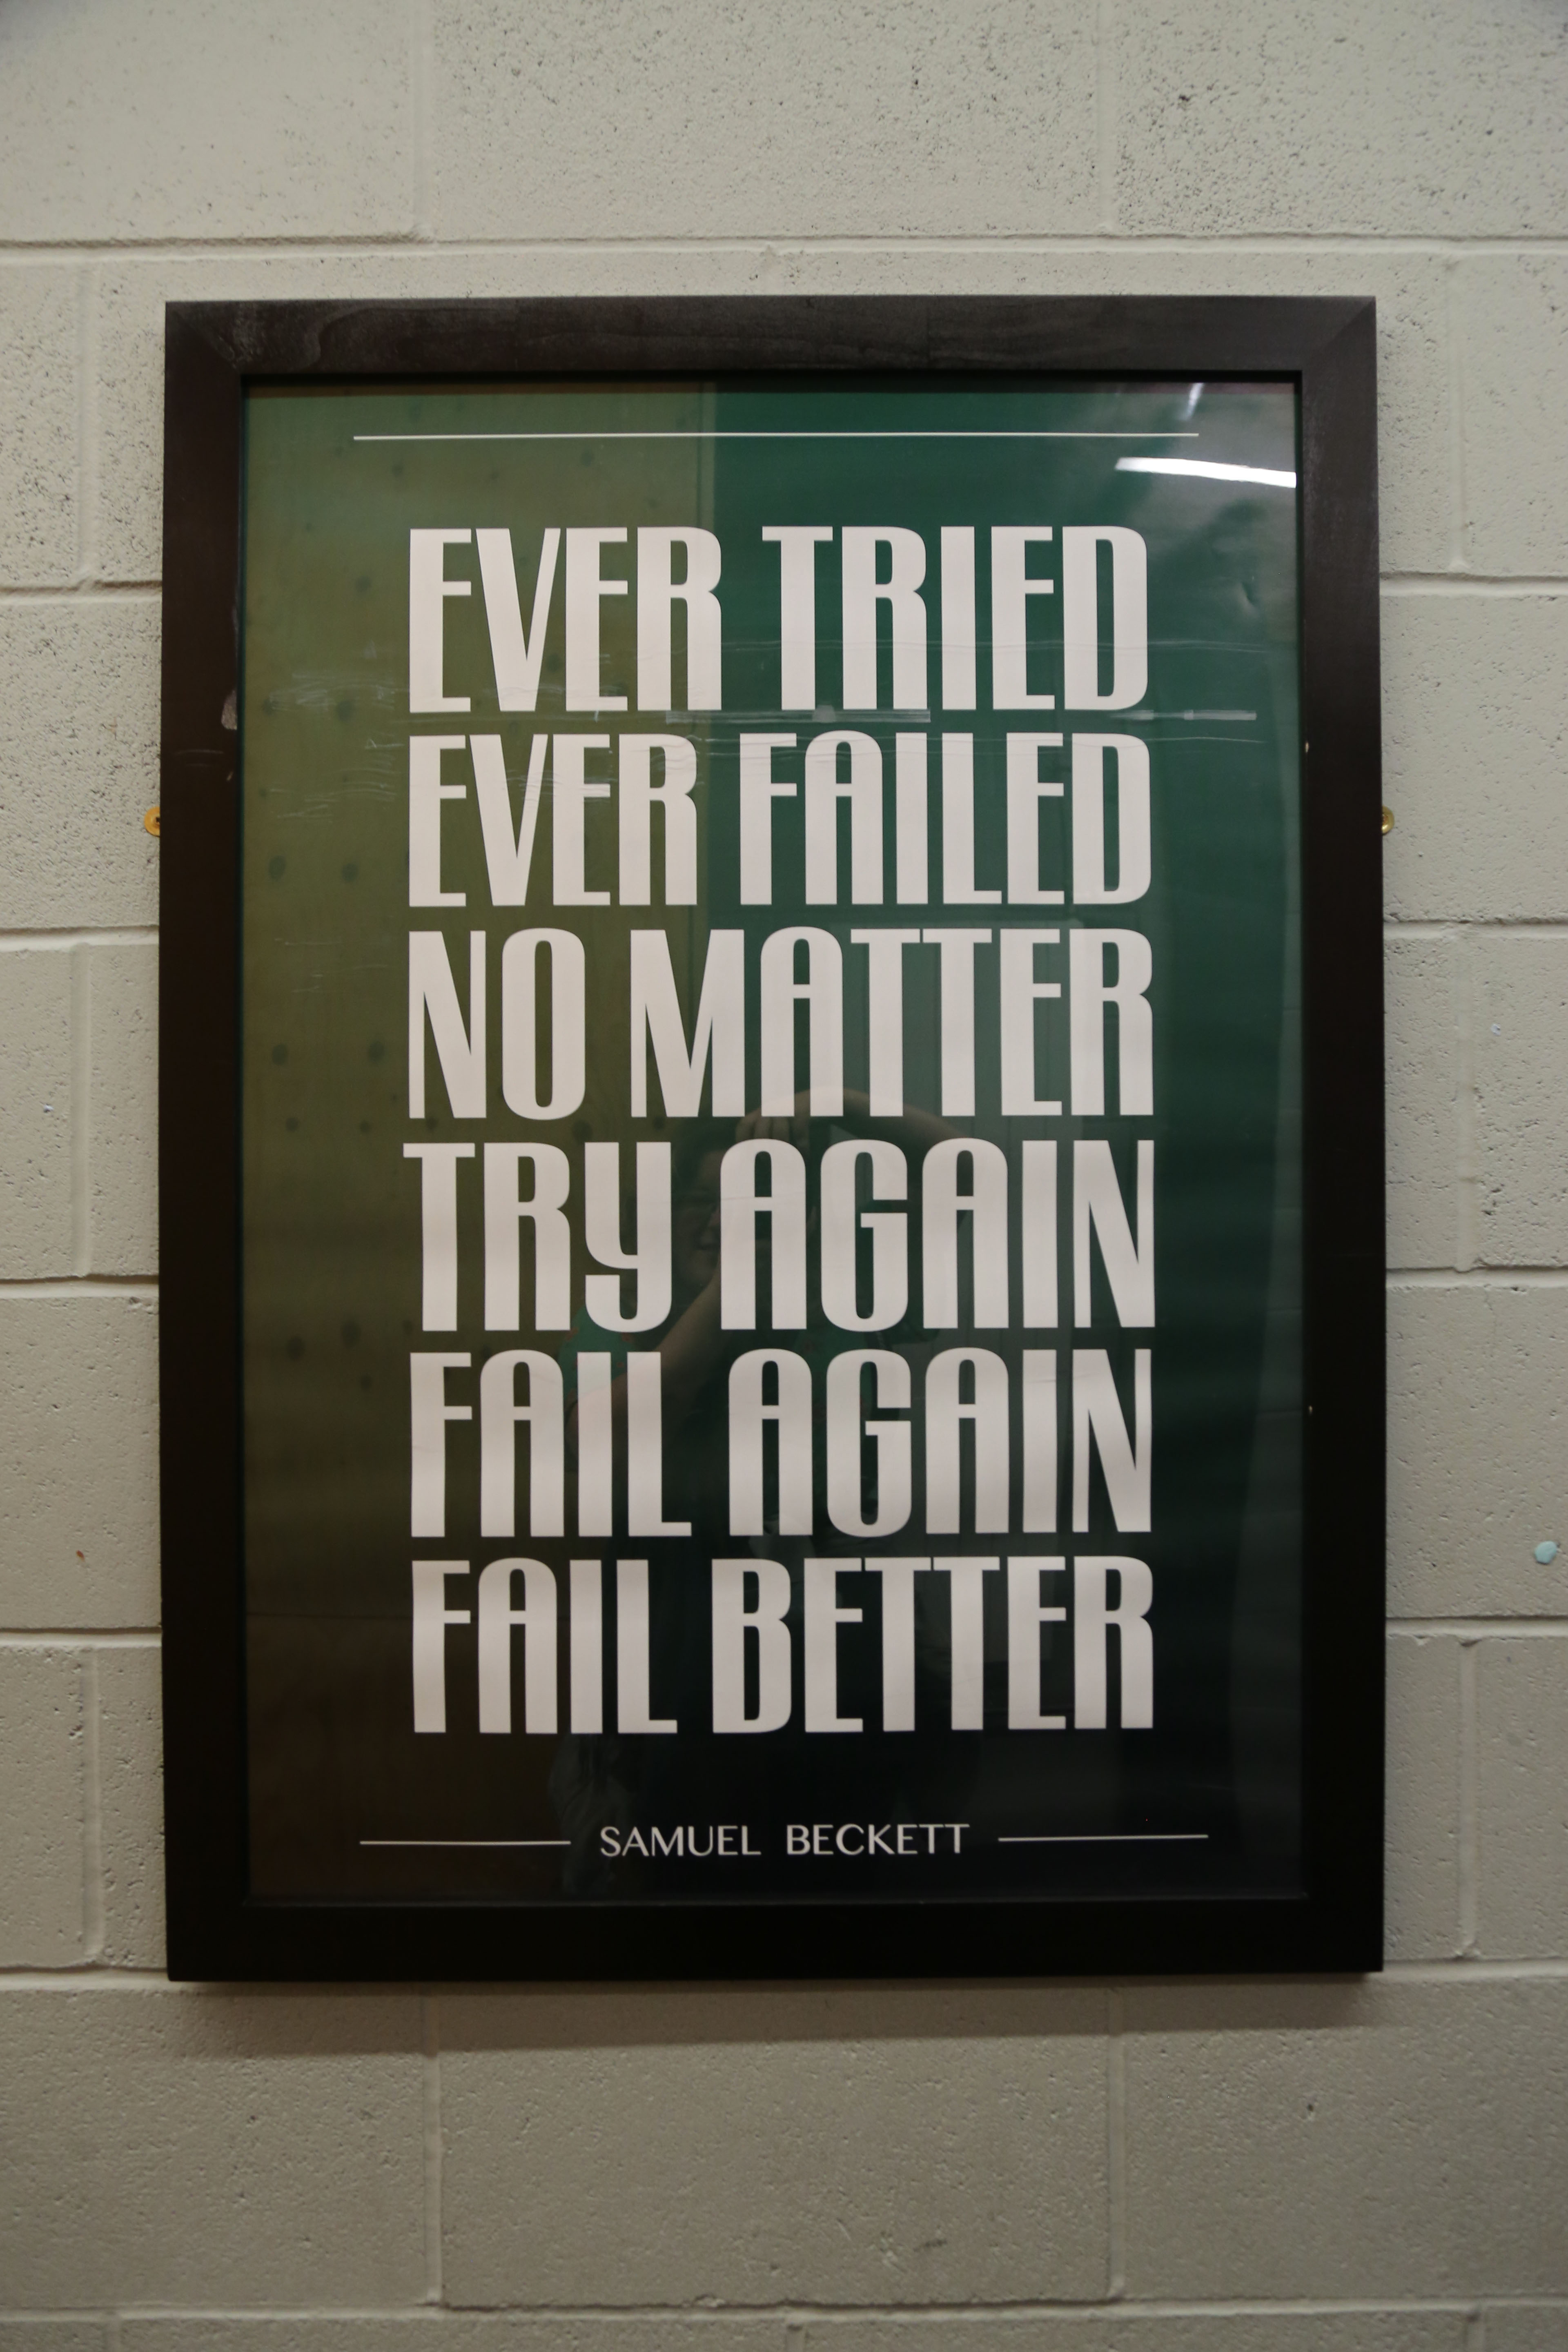 Picture of a Samuel Beckett quote in a frame